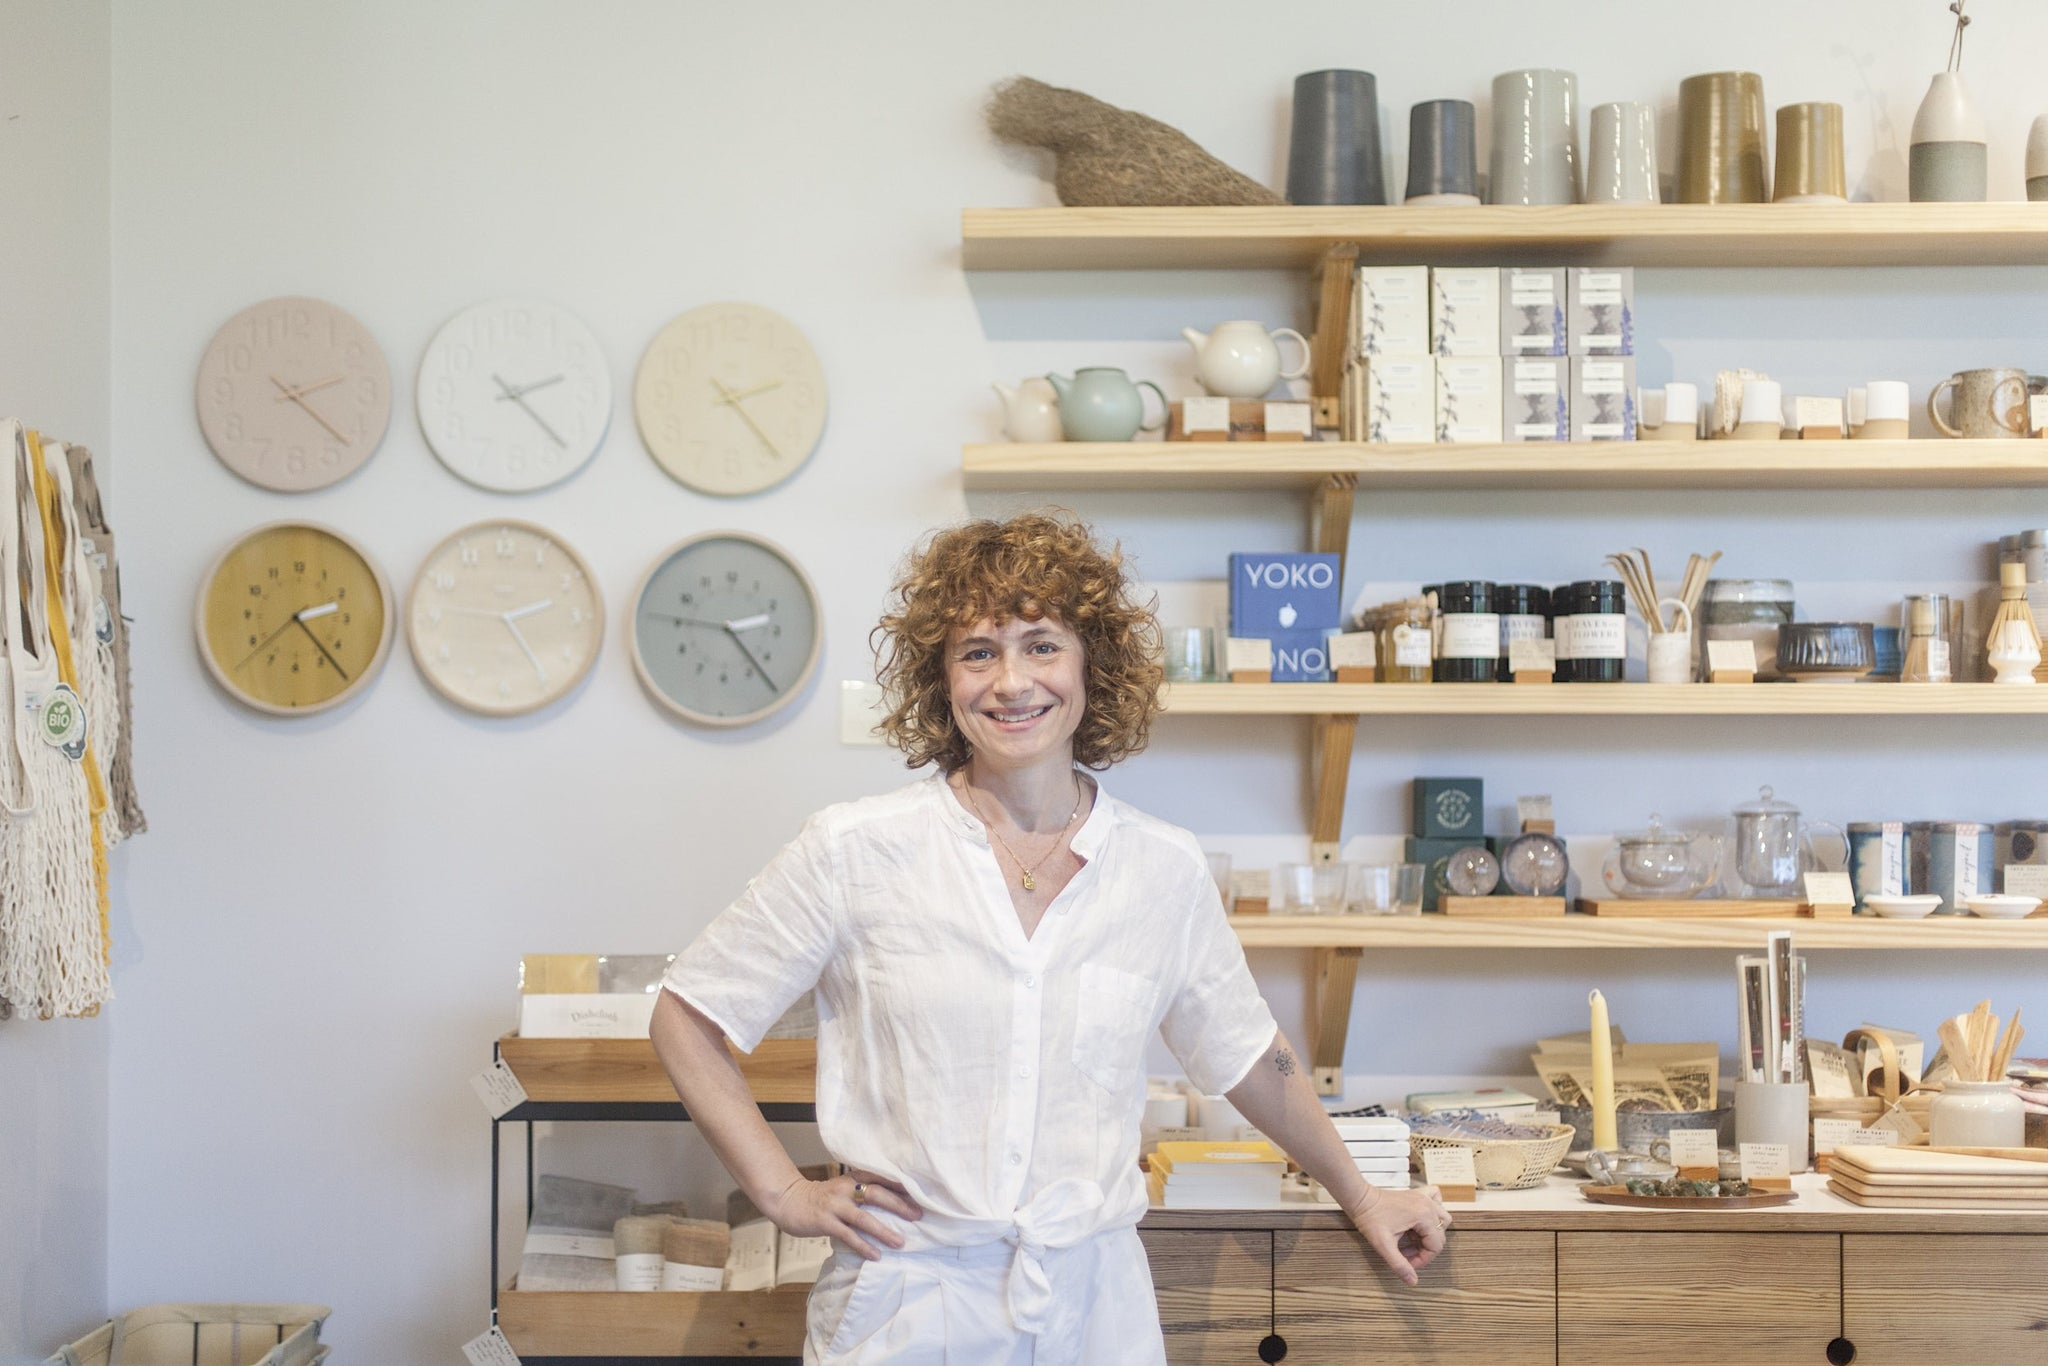 Nina Gordon's boutique, 'take heart', is located in East Austin, and it reflects her love of special and thoughtfully designed objects for the home and person